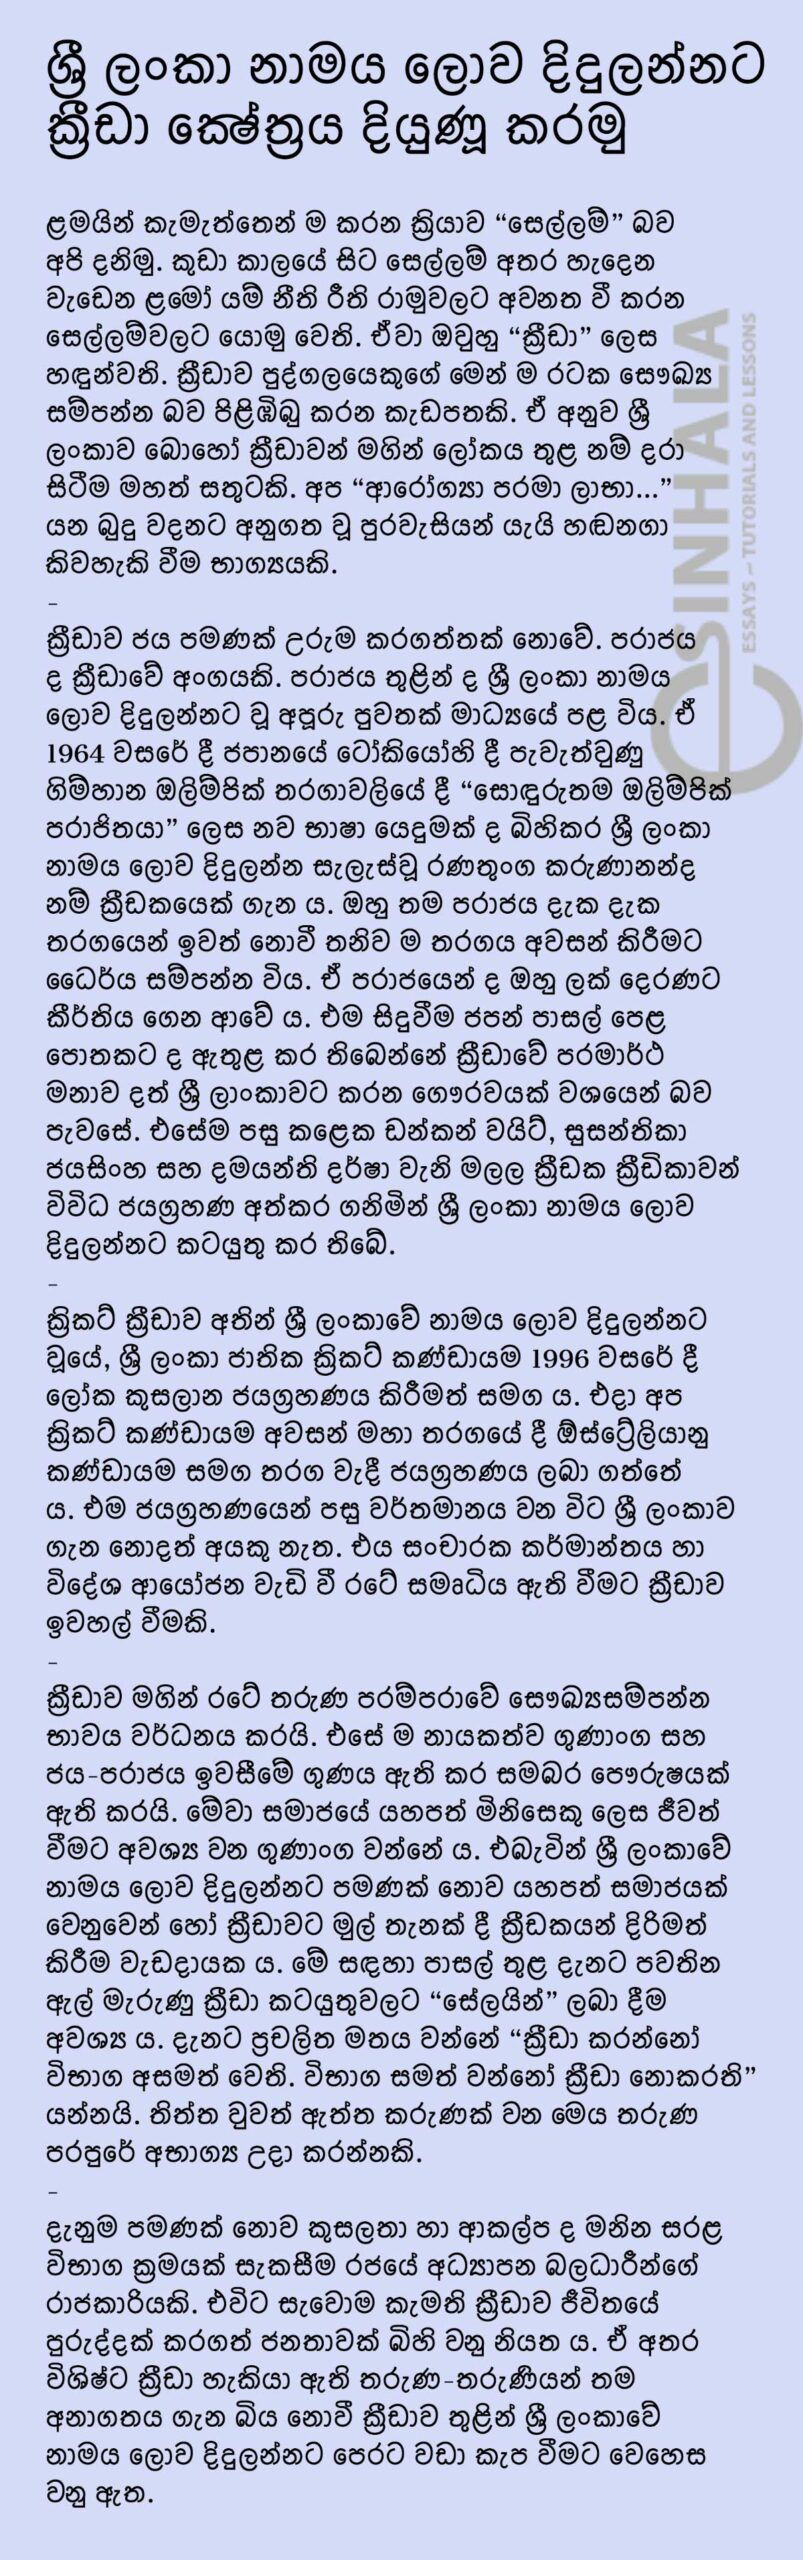 Let us develop the sports to make Sri Lanka shine in the world